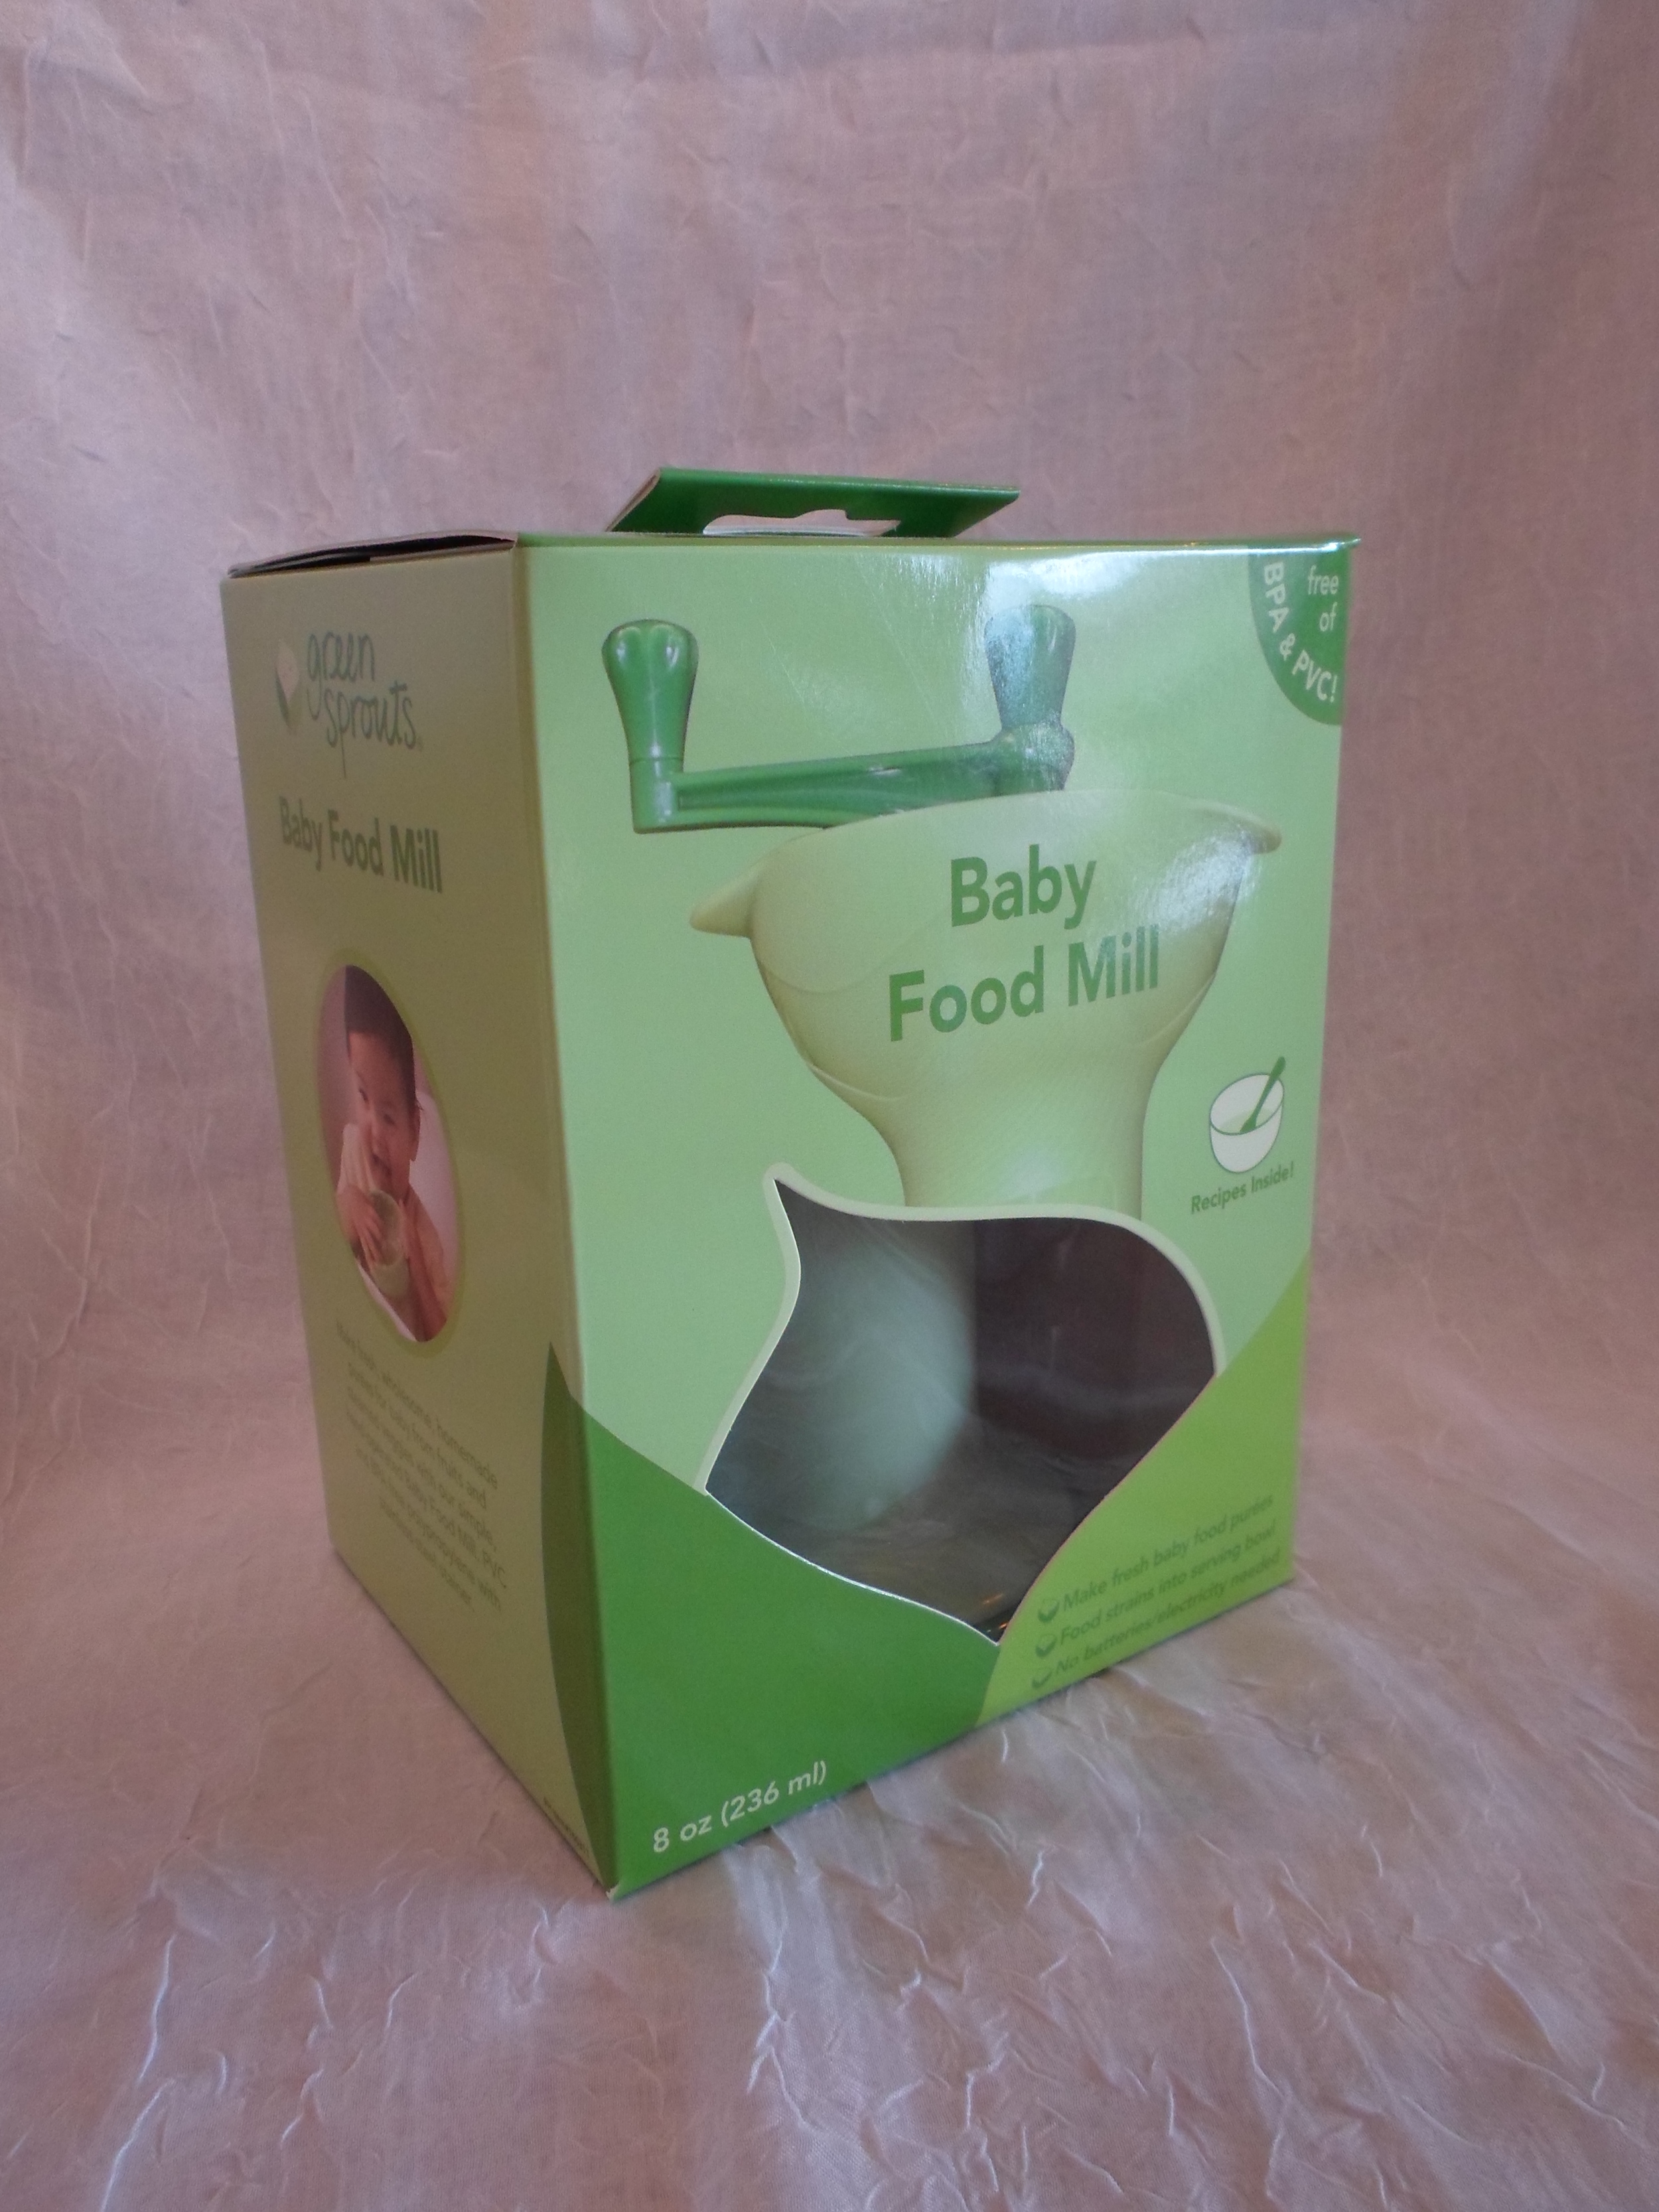 Green Sprouts Baby Food Mill    $16.95    Wants 1